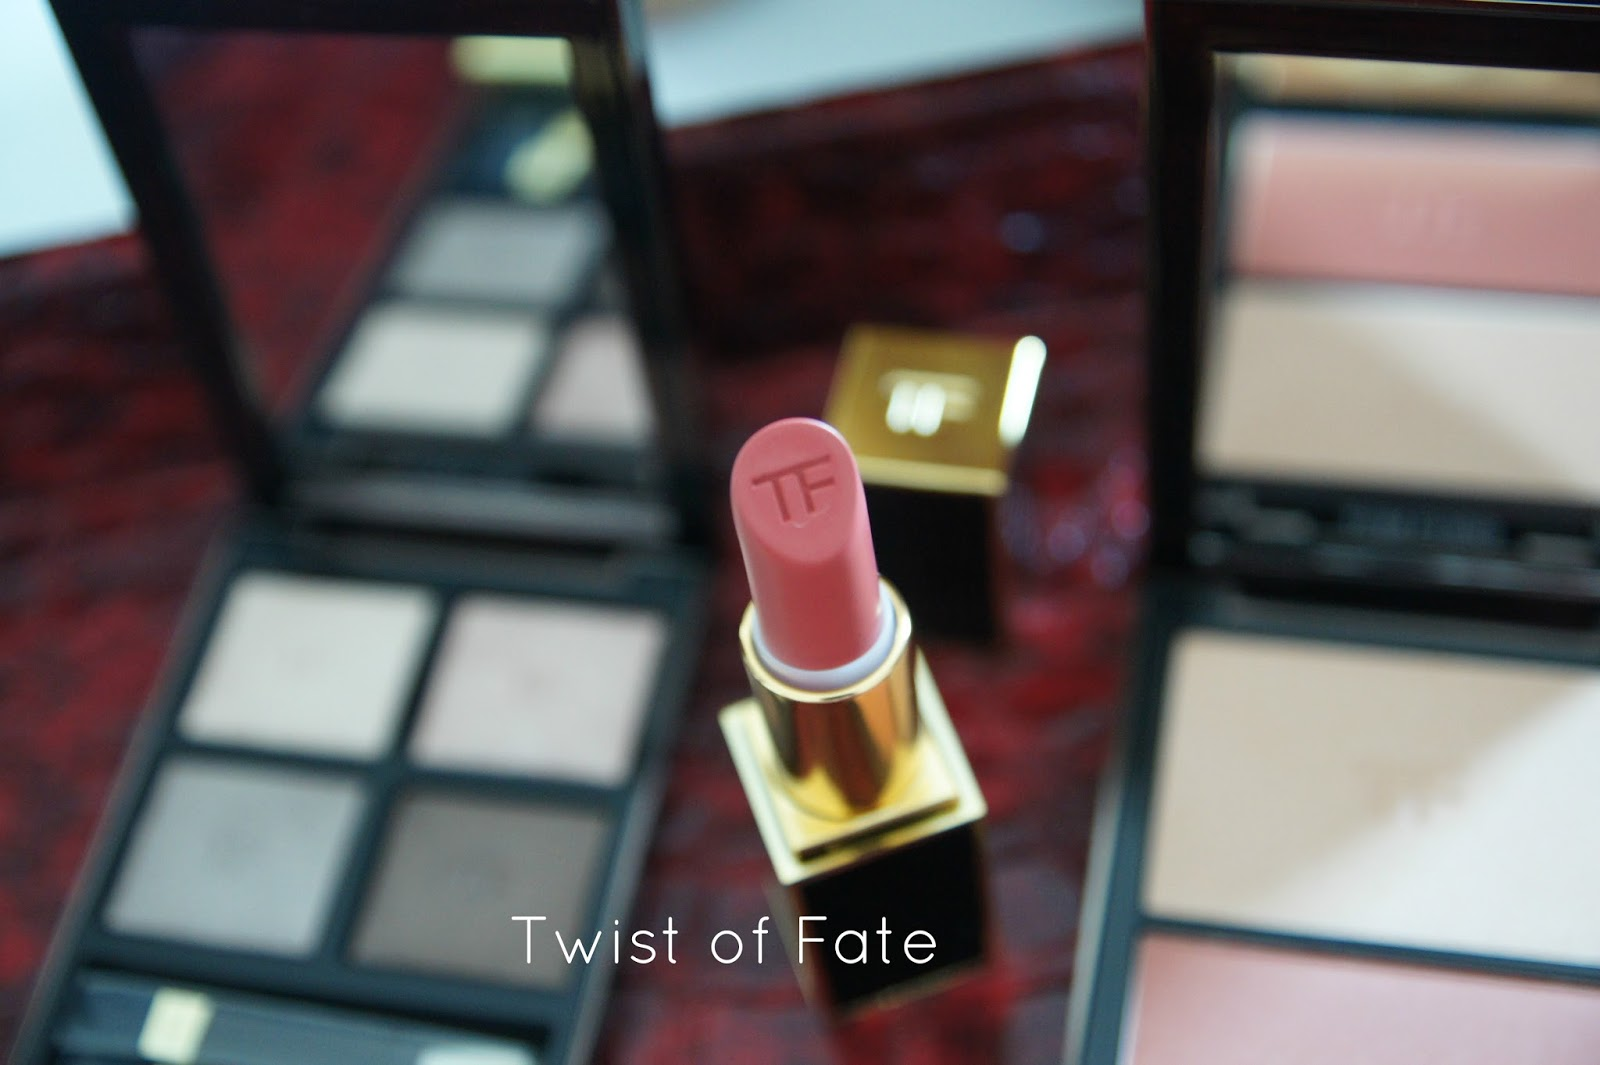 Tom Ford Twist of Fate